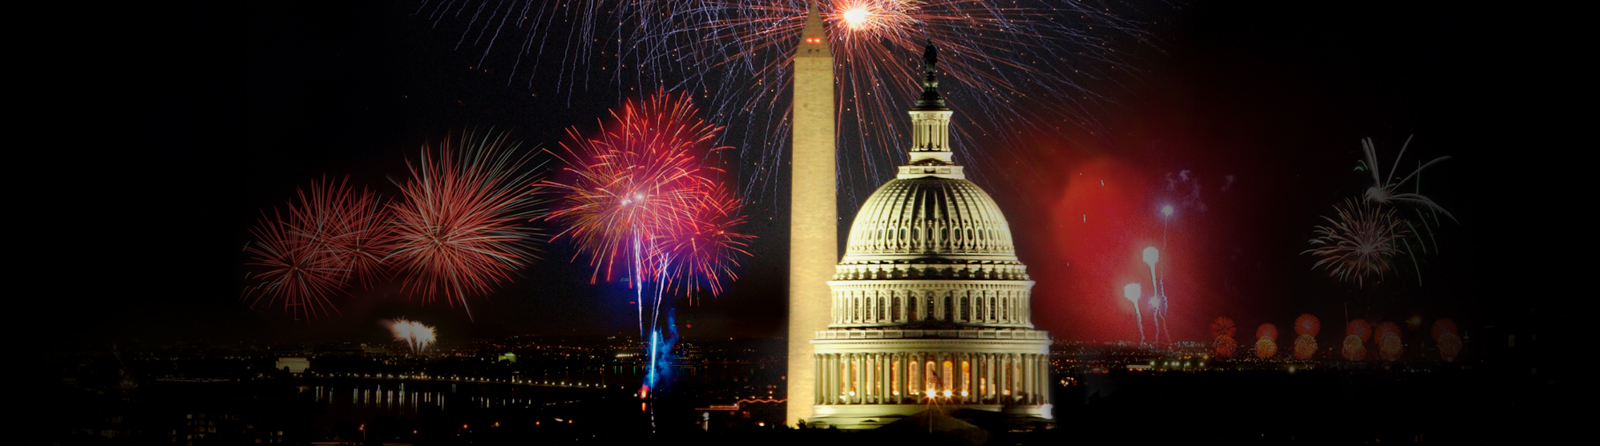 Fireworks over the Capitol building, Washington, D.C.